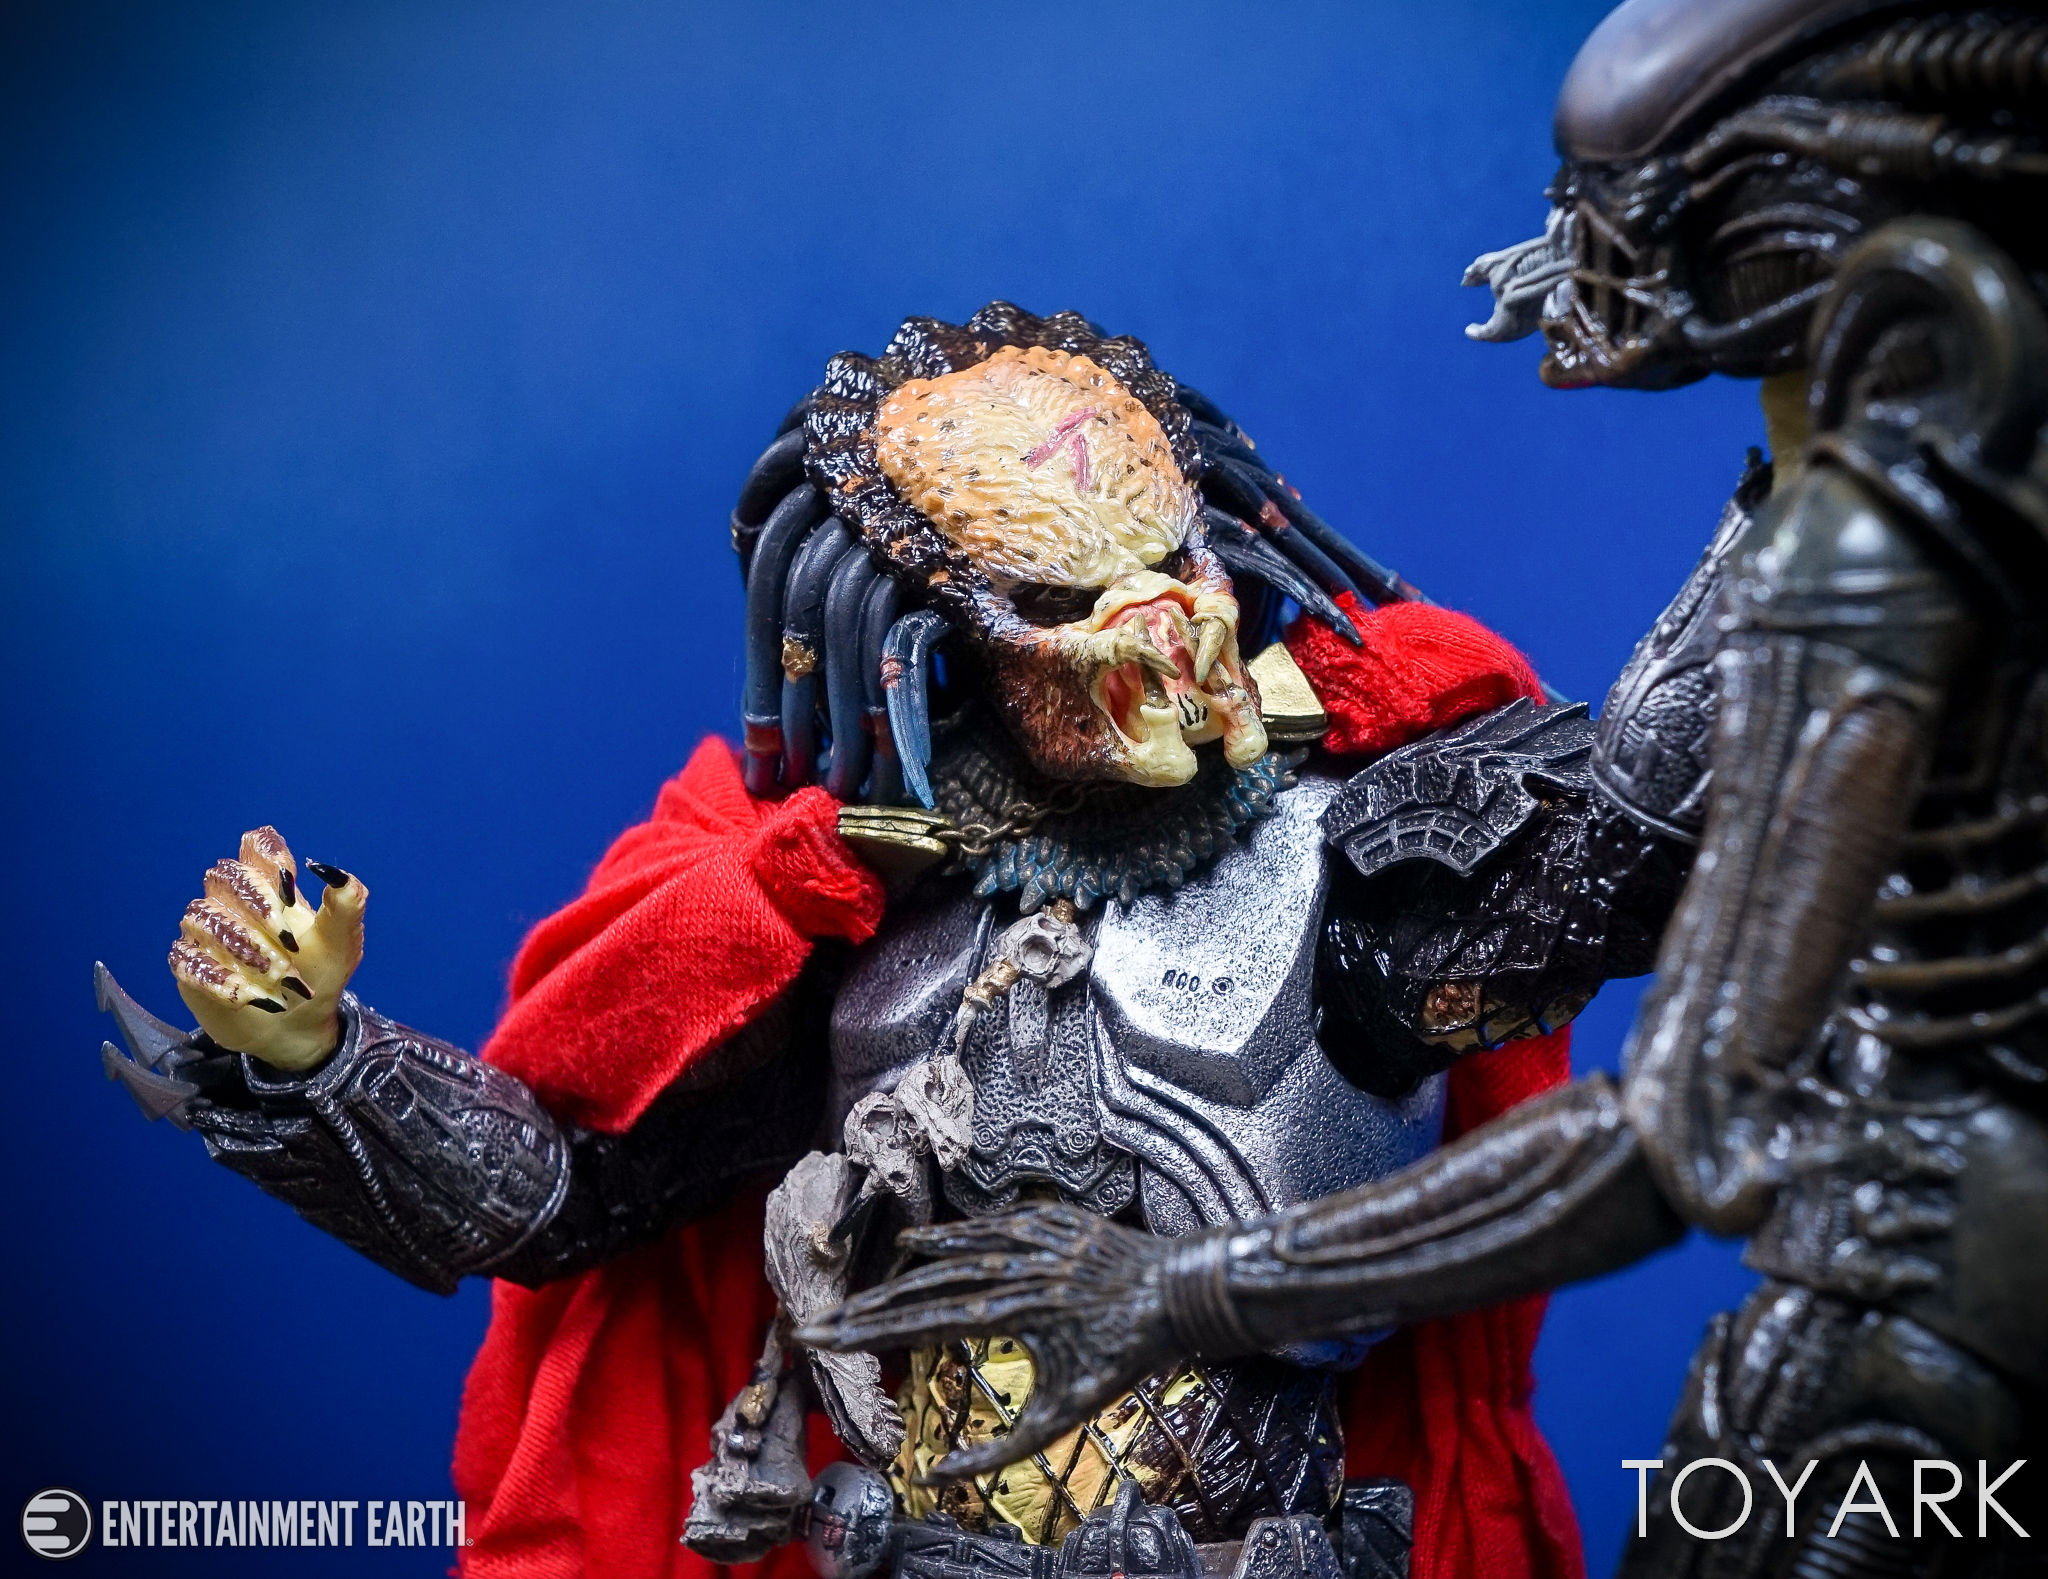 http://news.toyark.com/wp-content/uploads/sites/4/2017/04/NECA-Elder-Predator-048.jpg